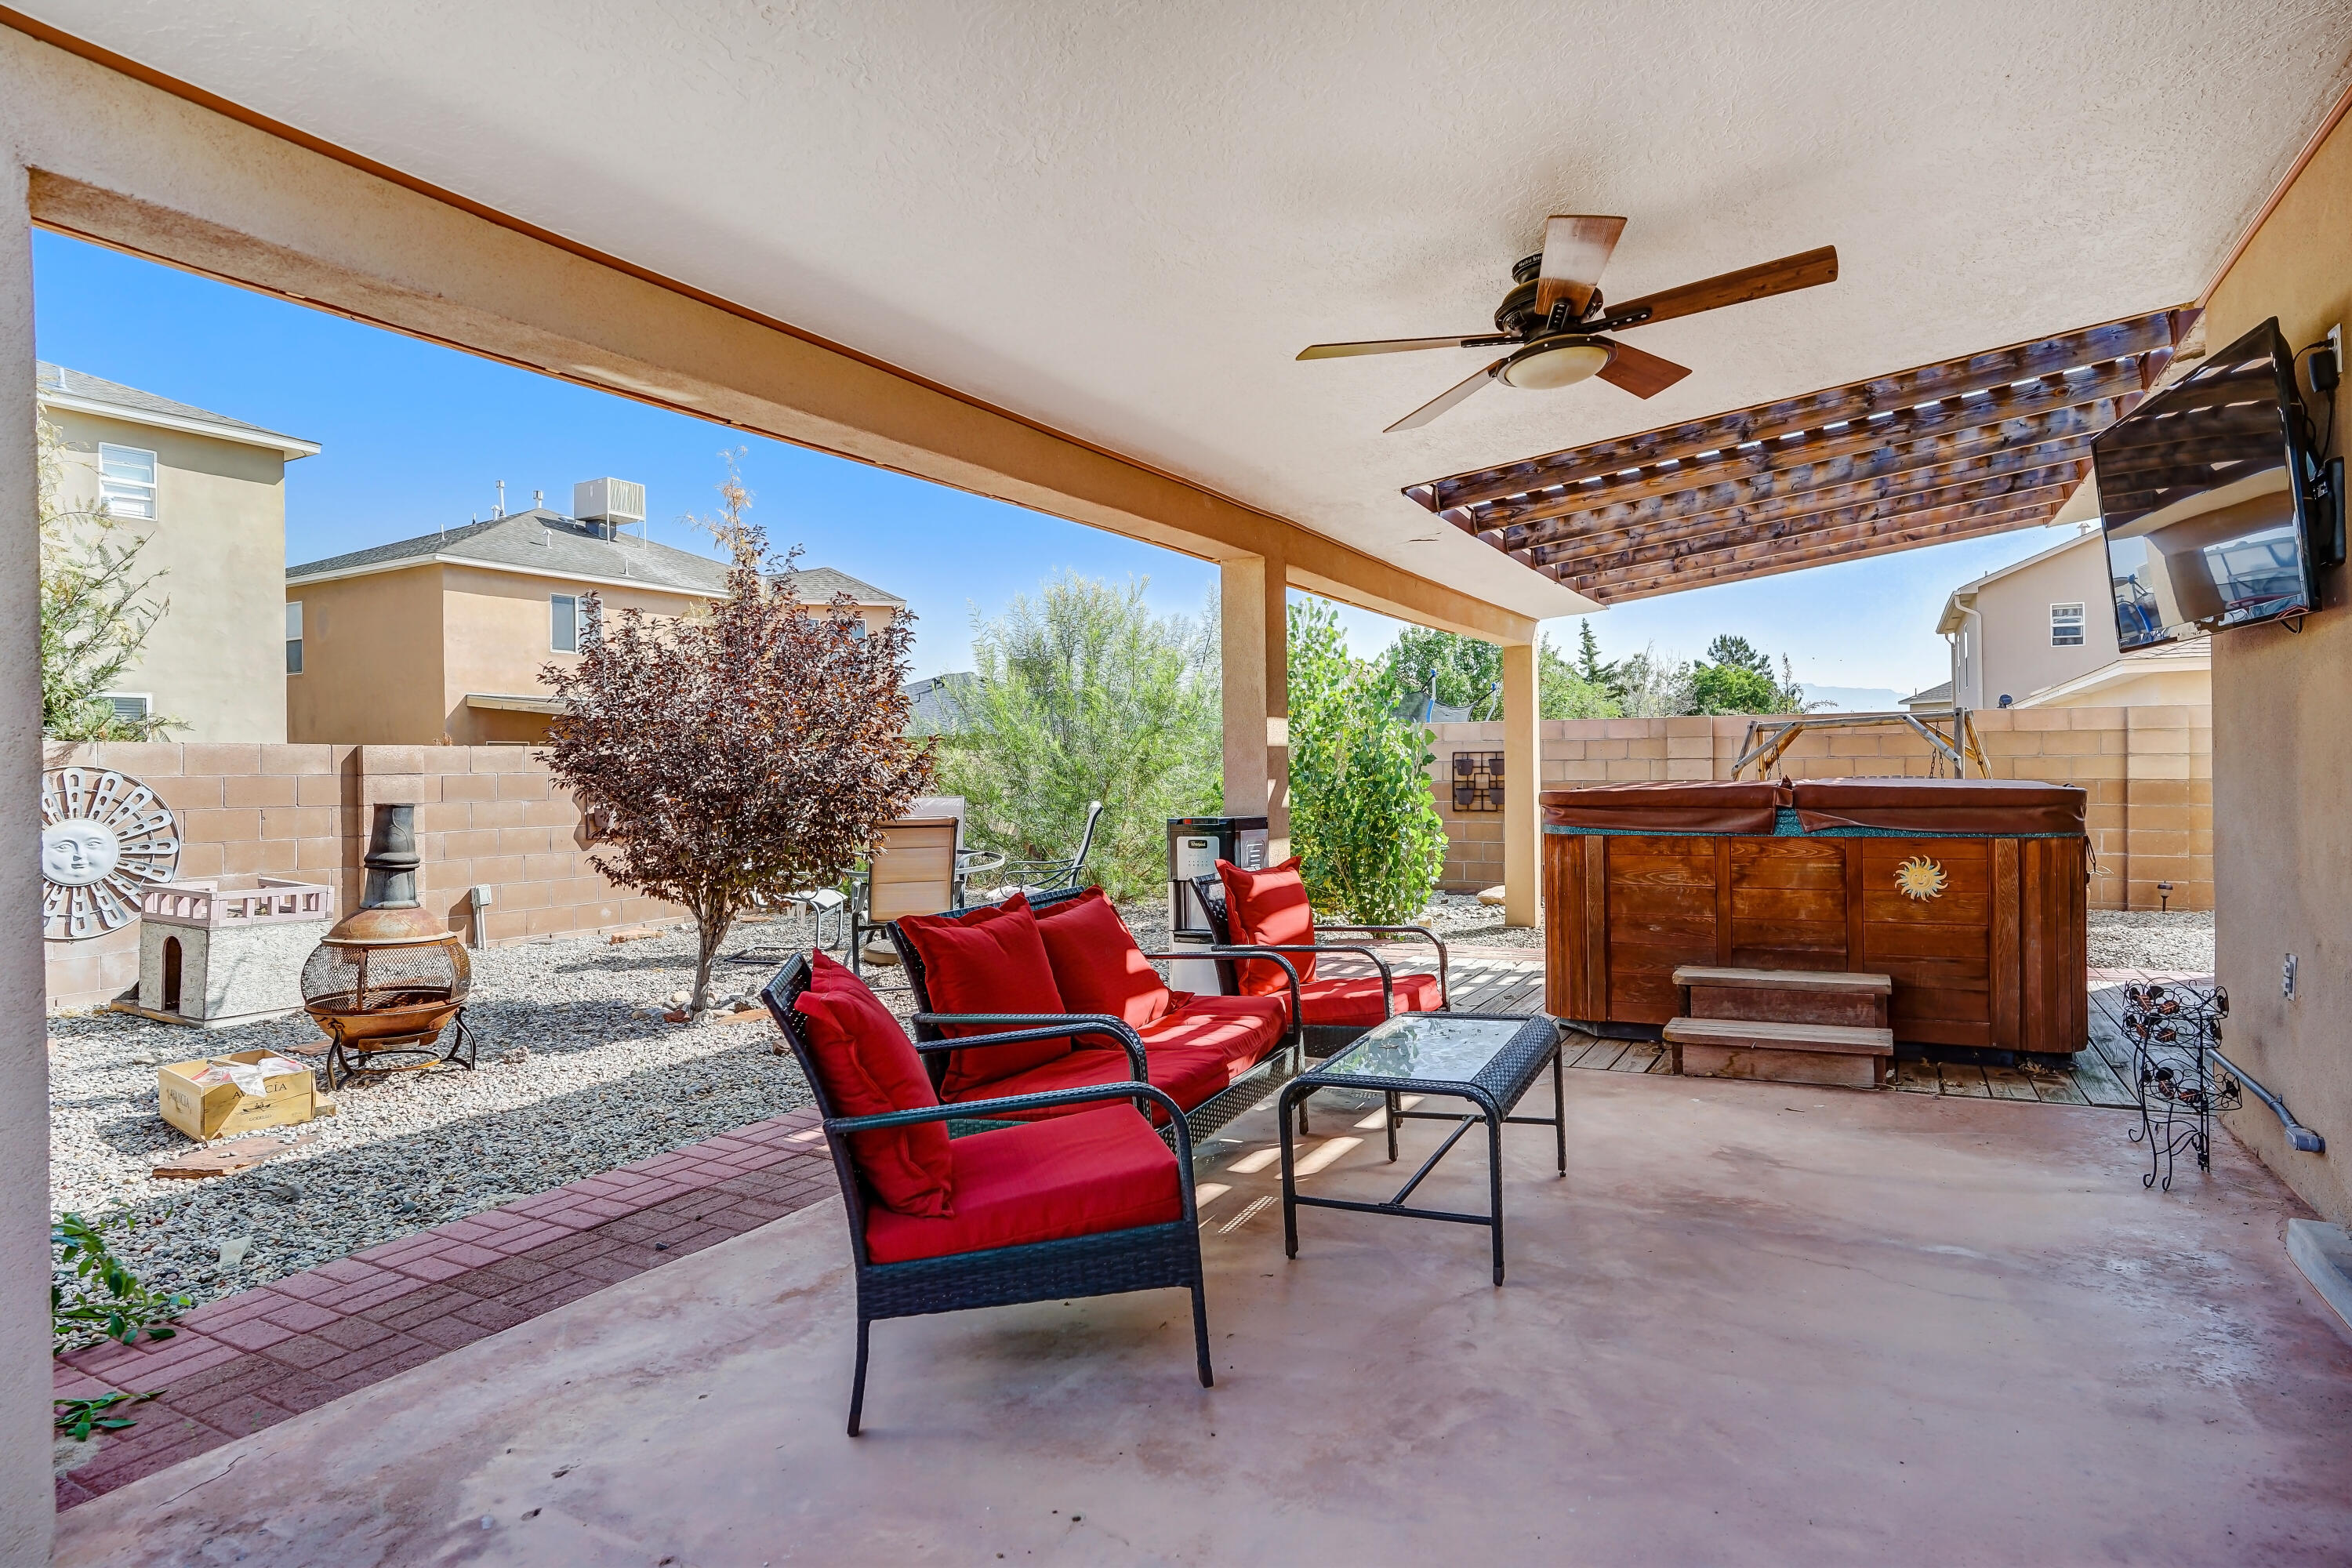 This beautifully updated 4 bedroom home is ready for a new owner! Located in Ventana HIlls. This home has a spacious kitchen with granite counter tops and large island! Enjoy relaxing outback in a hot tub while watching TV!  The home has a finished garage ready for multiple uses! Come see this wonderful home today!